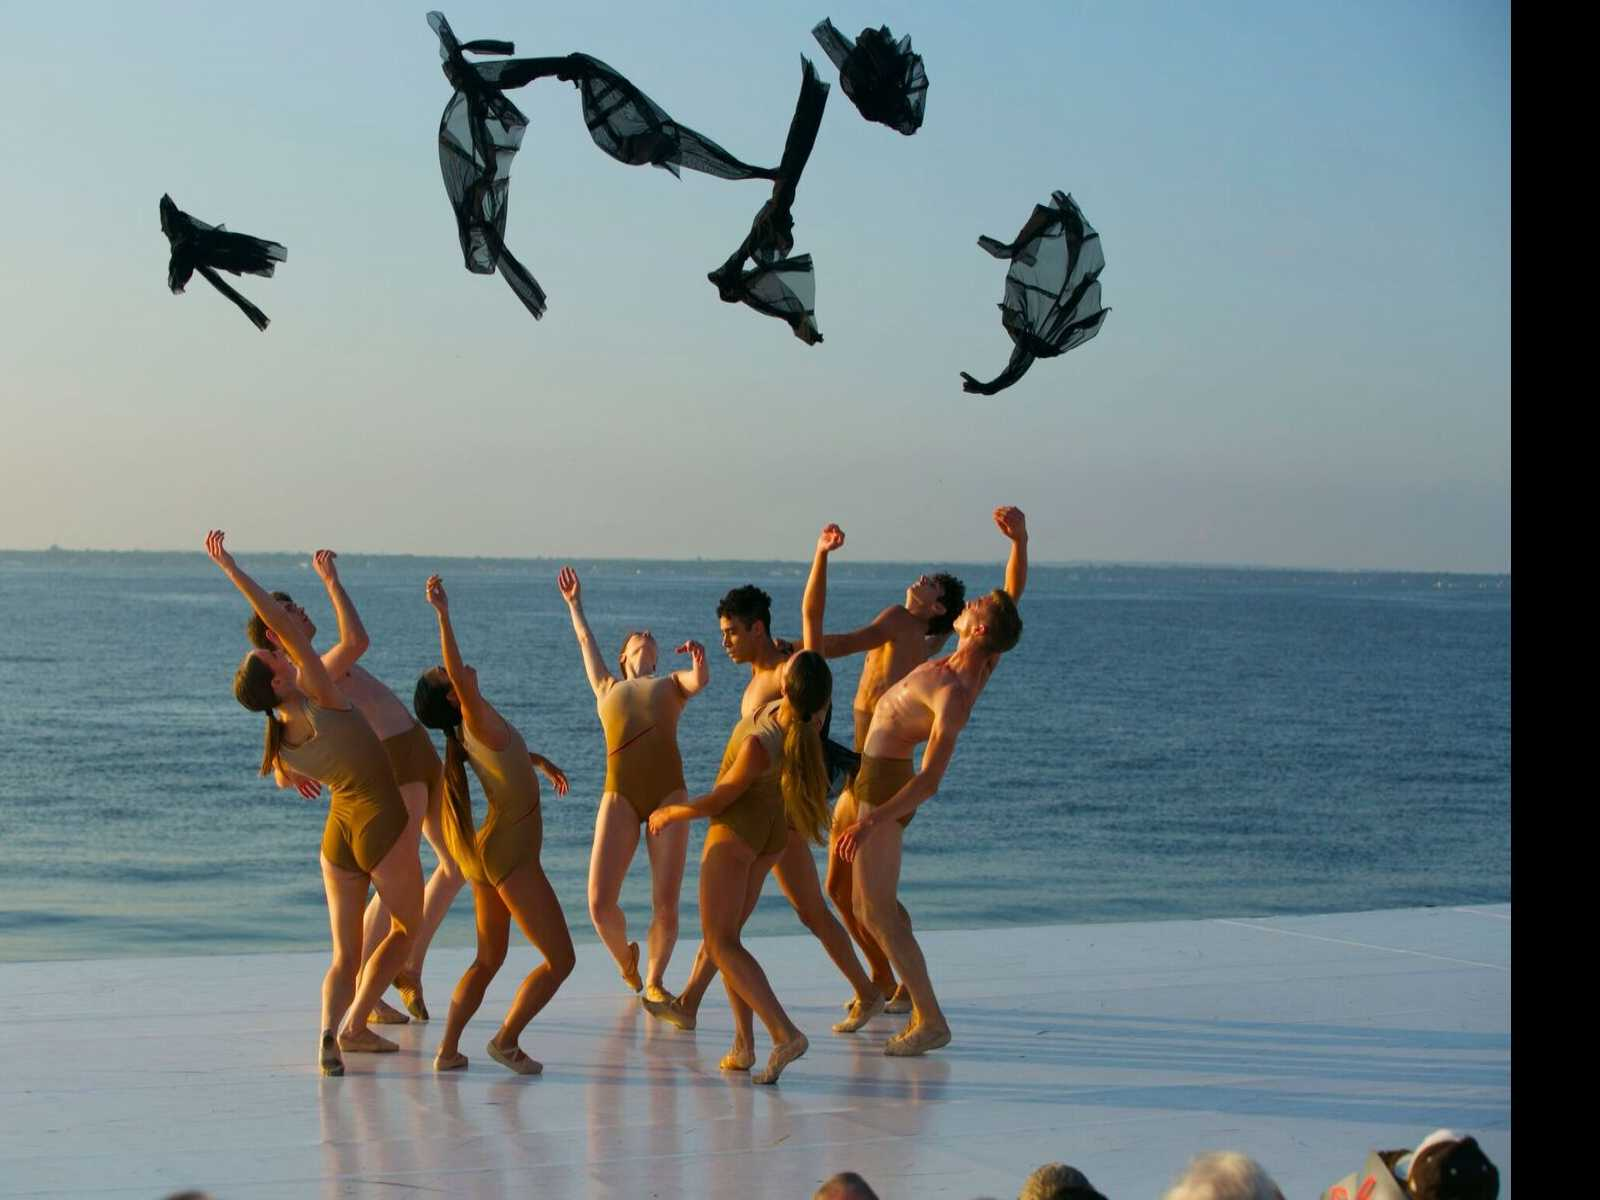 Fire Island Dance Festival Brings Weekend of Unforgettable Dance to the Pines